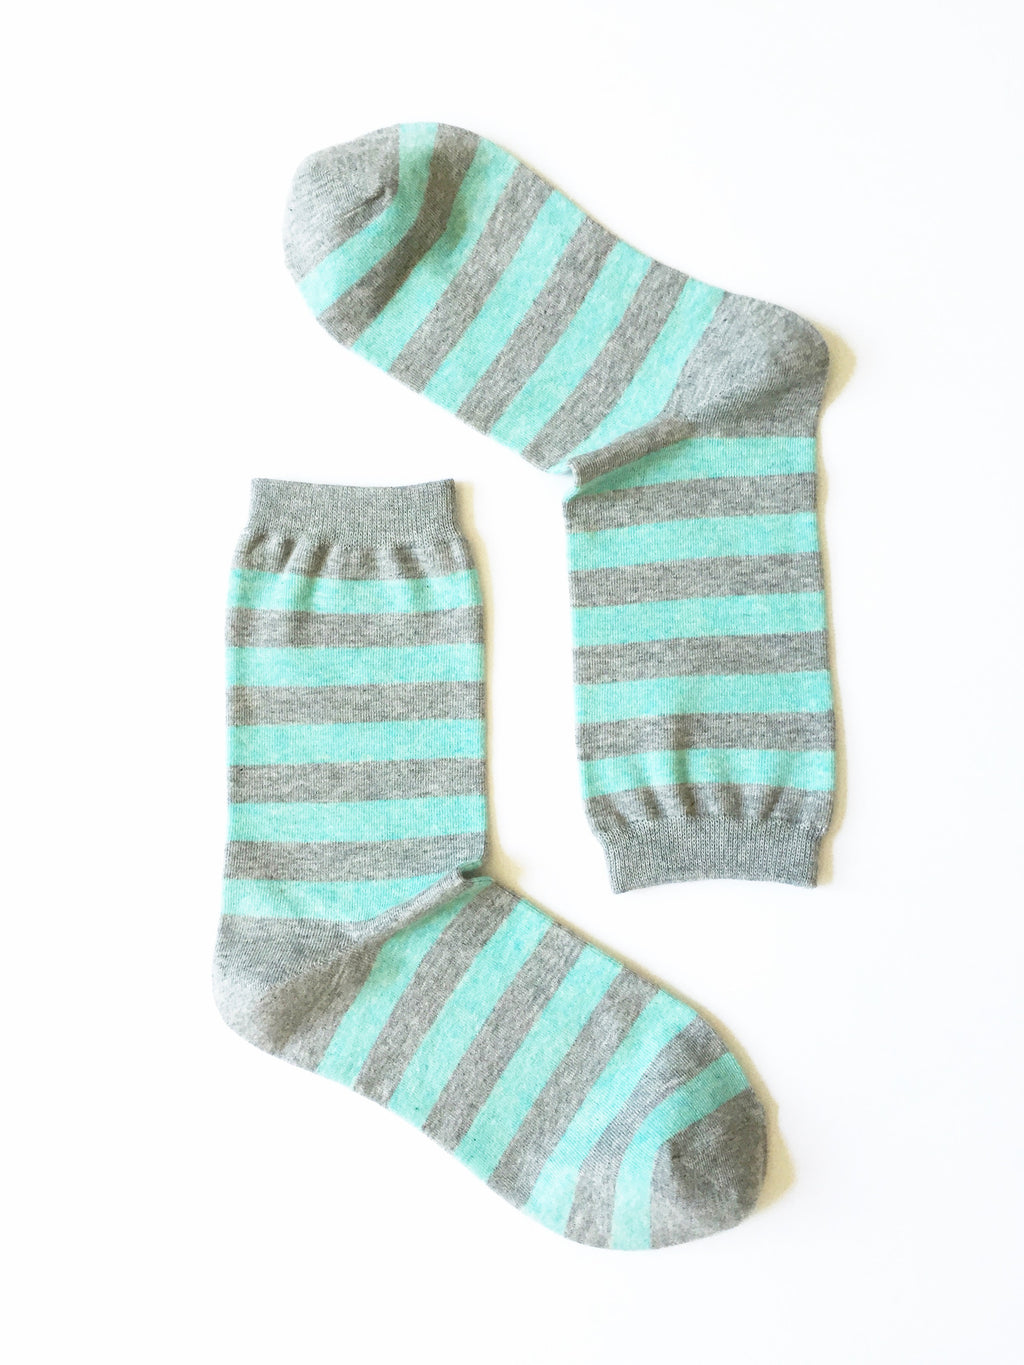 ZEBRA STRIPES TURQUOISE CREW SOCKS